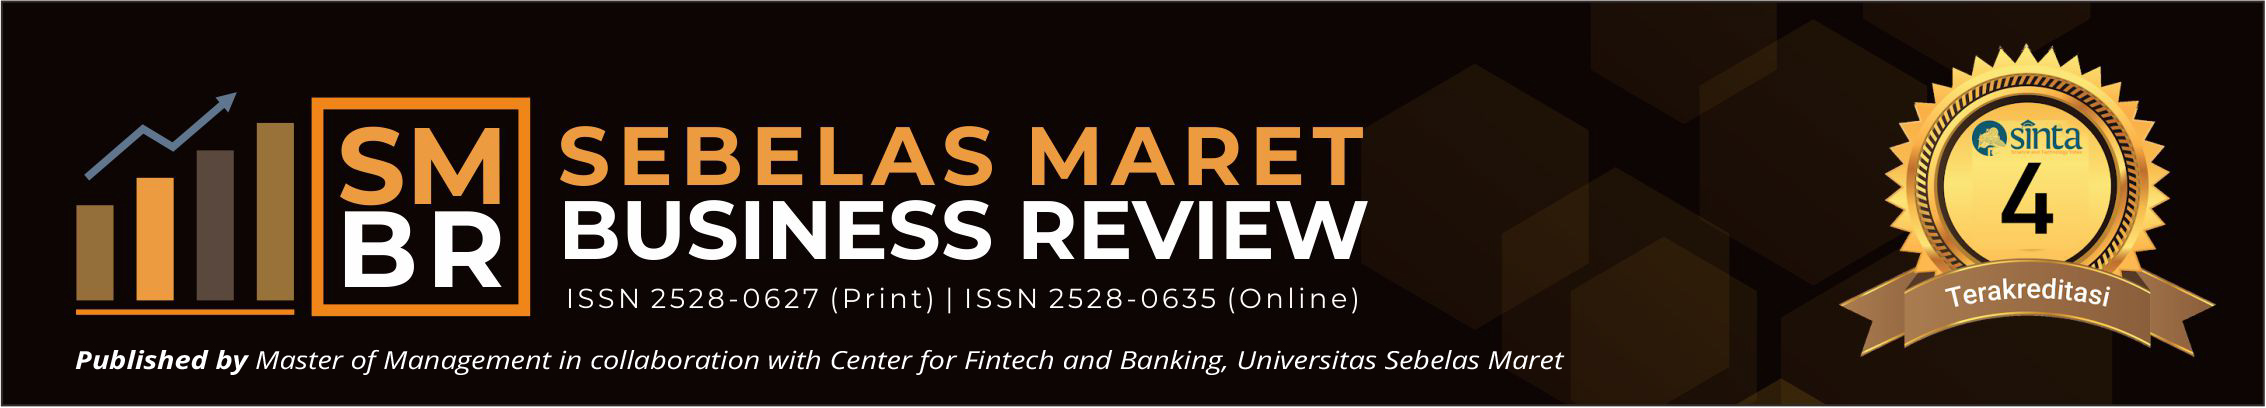 Sebelas Maret Business Review